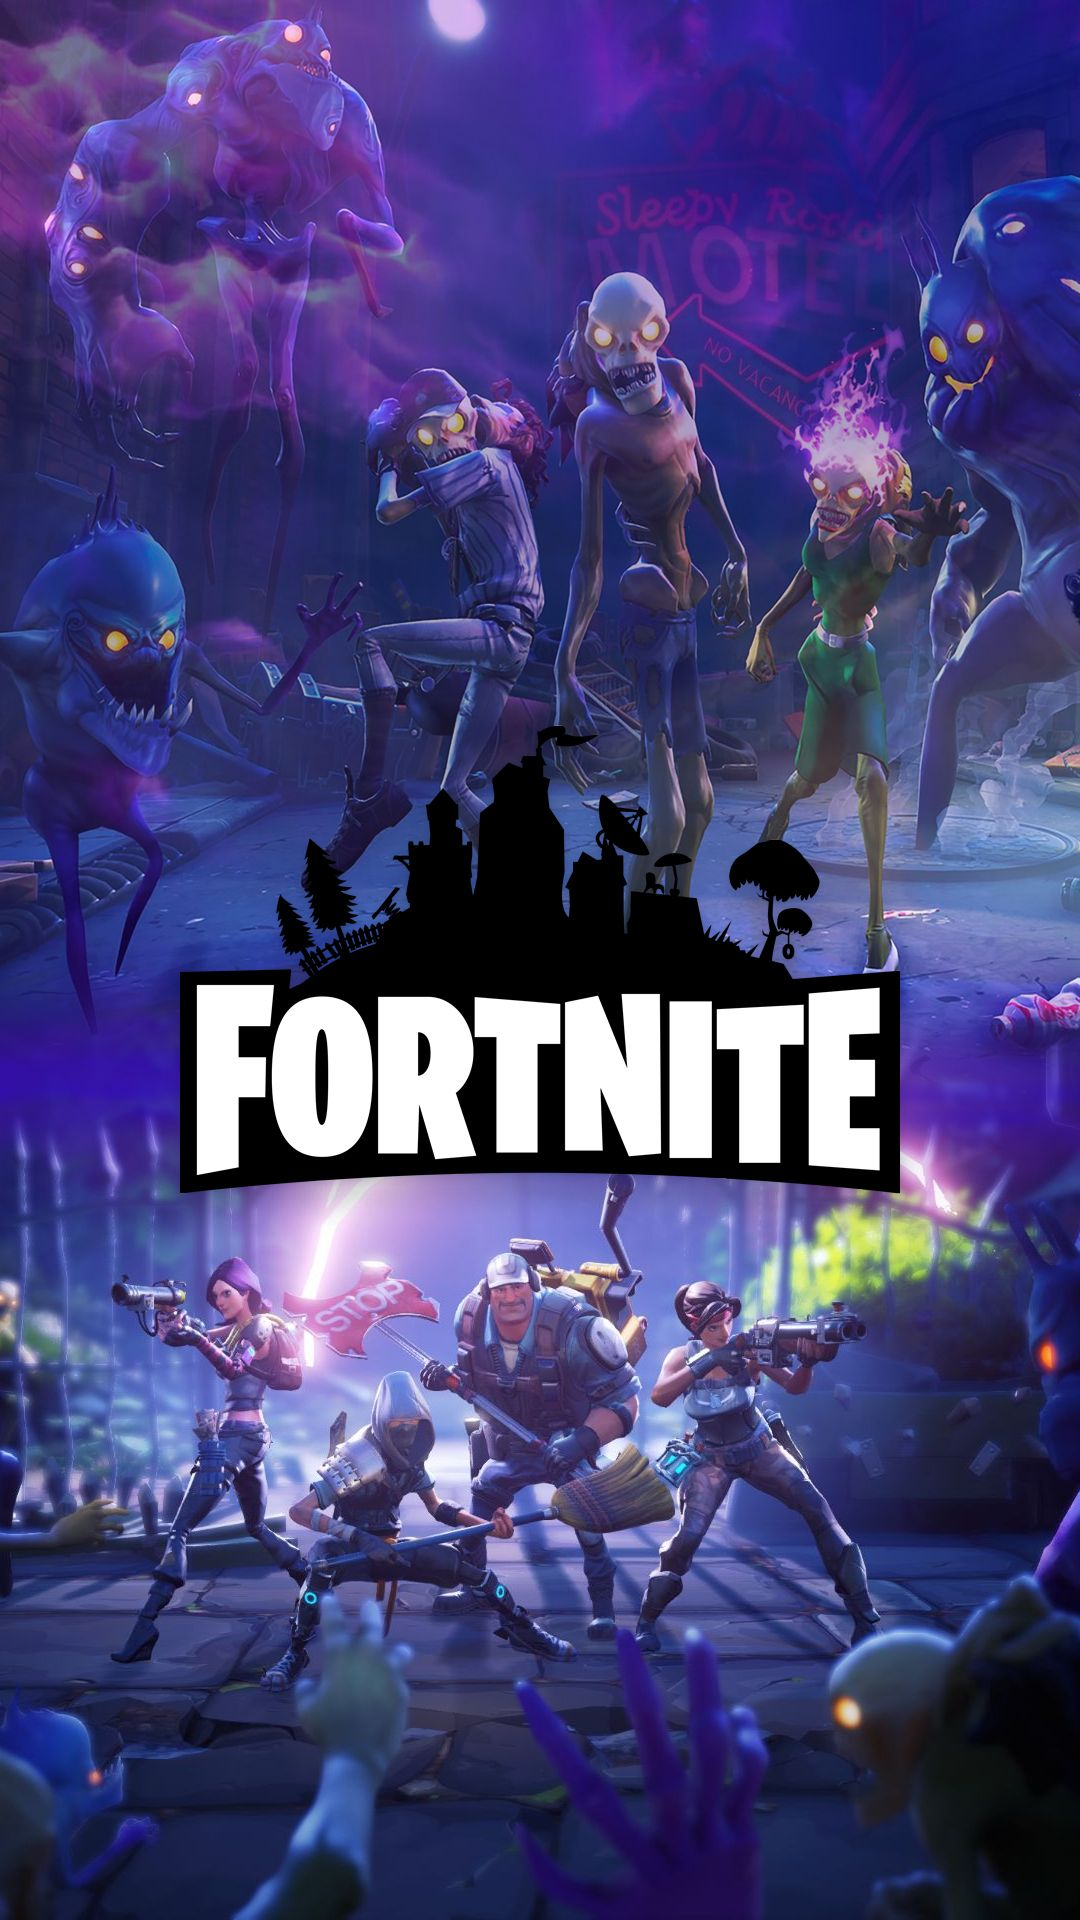 Fortnite Battle Royale 4k Wallpapers Top Free Fortnite Battle Royale 4k Backgrounds Wallpaperaccess